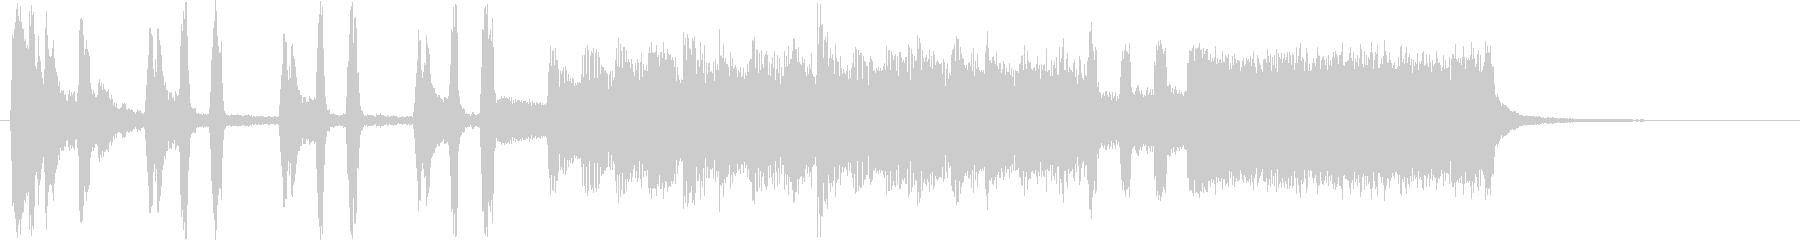 Comical and nimble music's unreproduced waveform